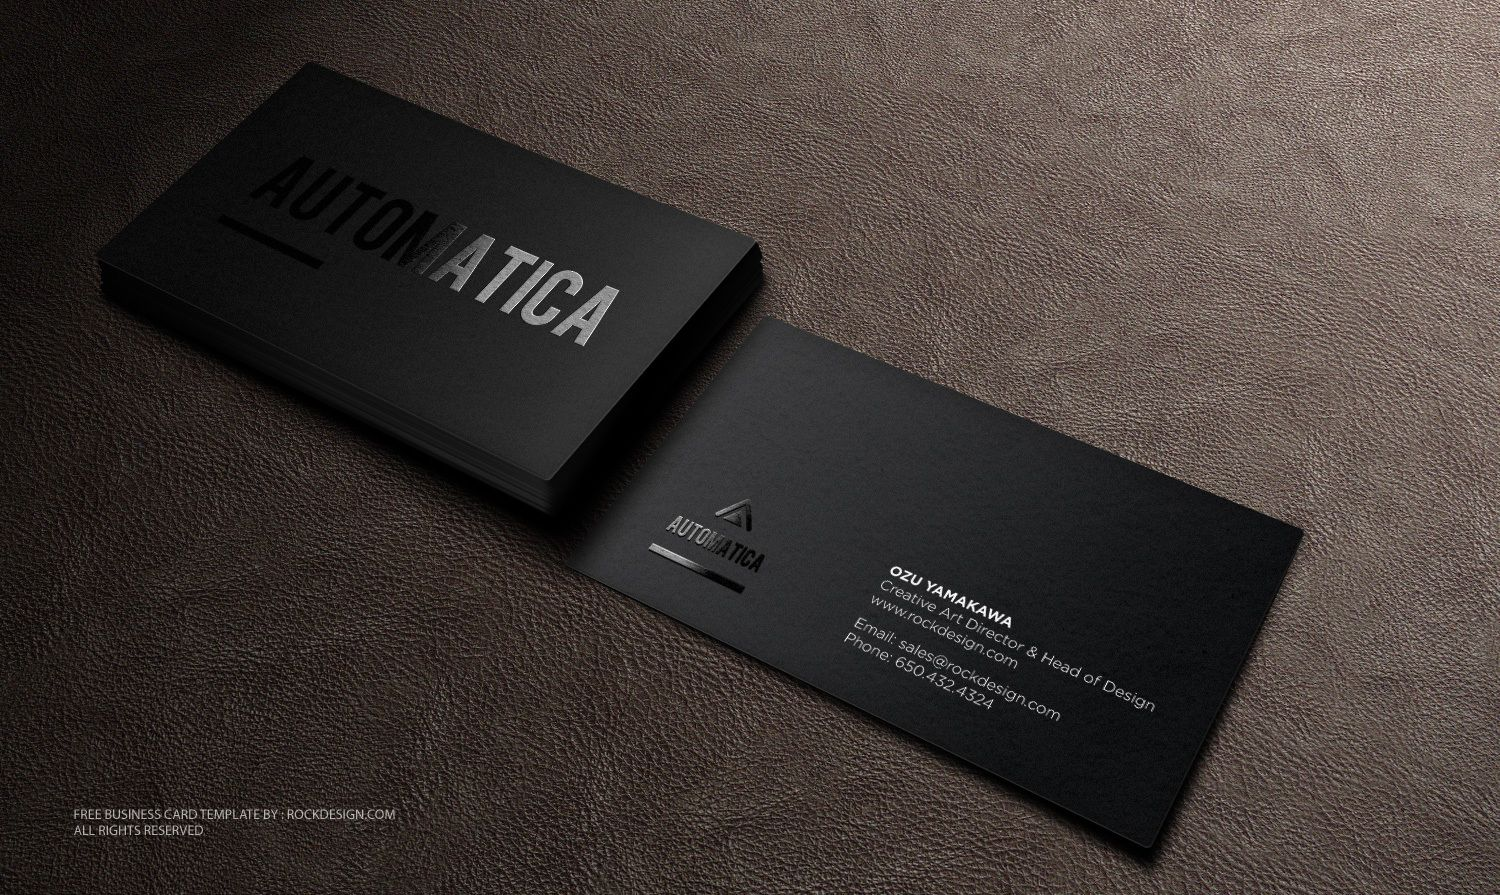 Black business card template download free design templates black business card template download free design templates cheaphphosting